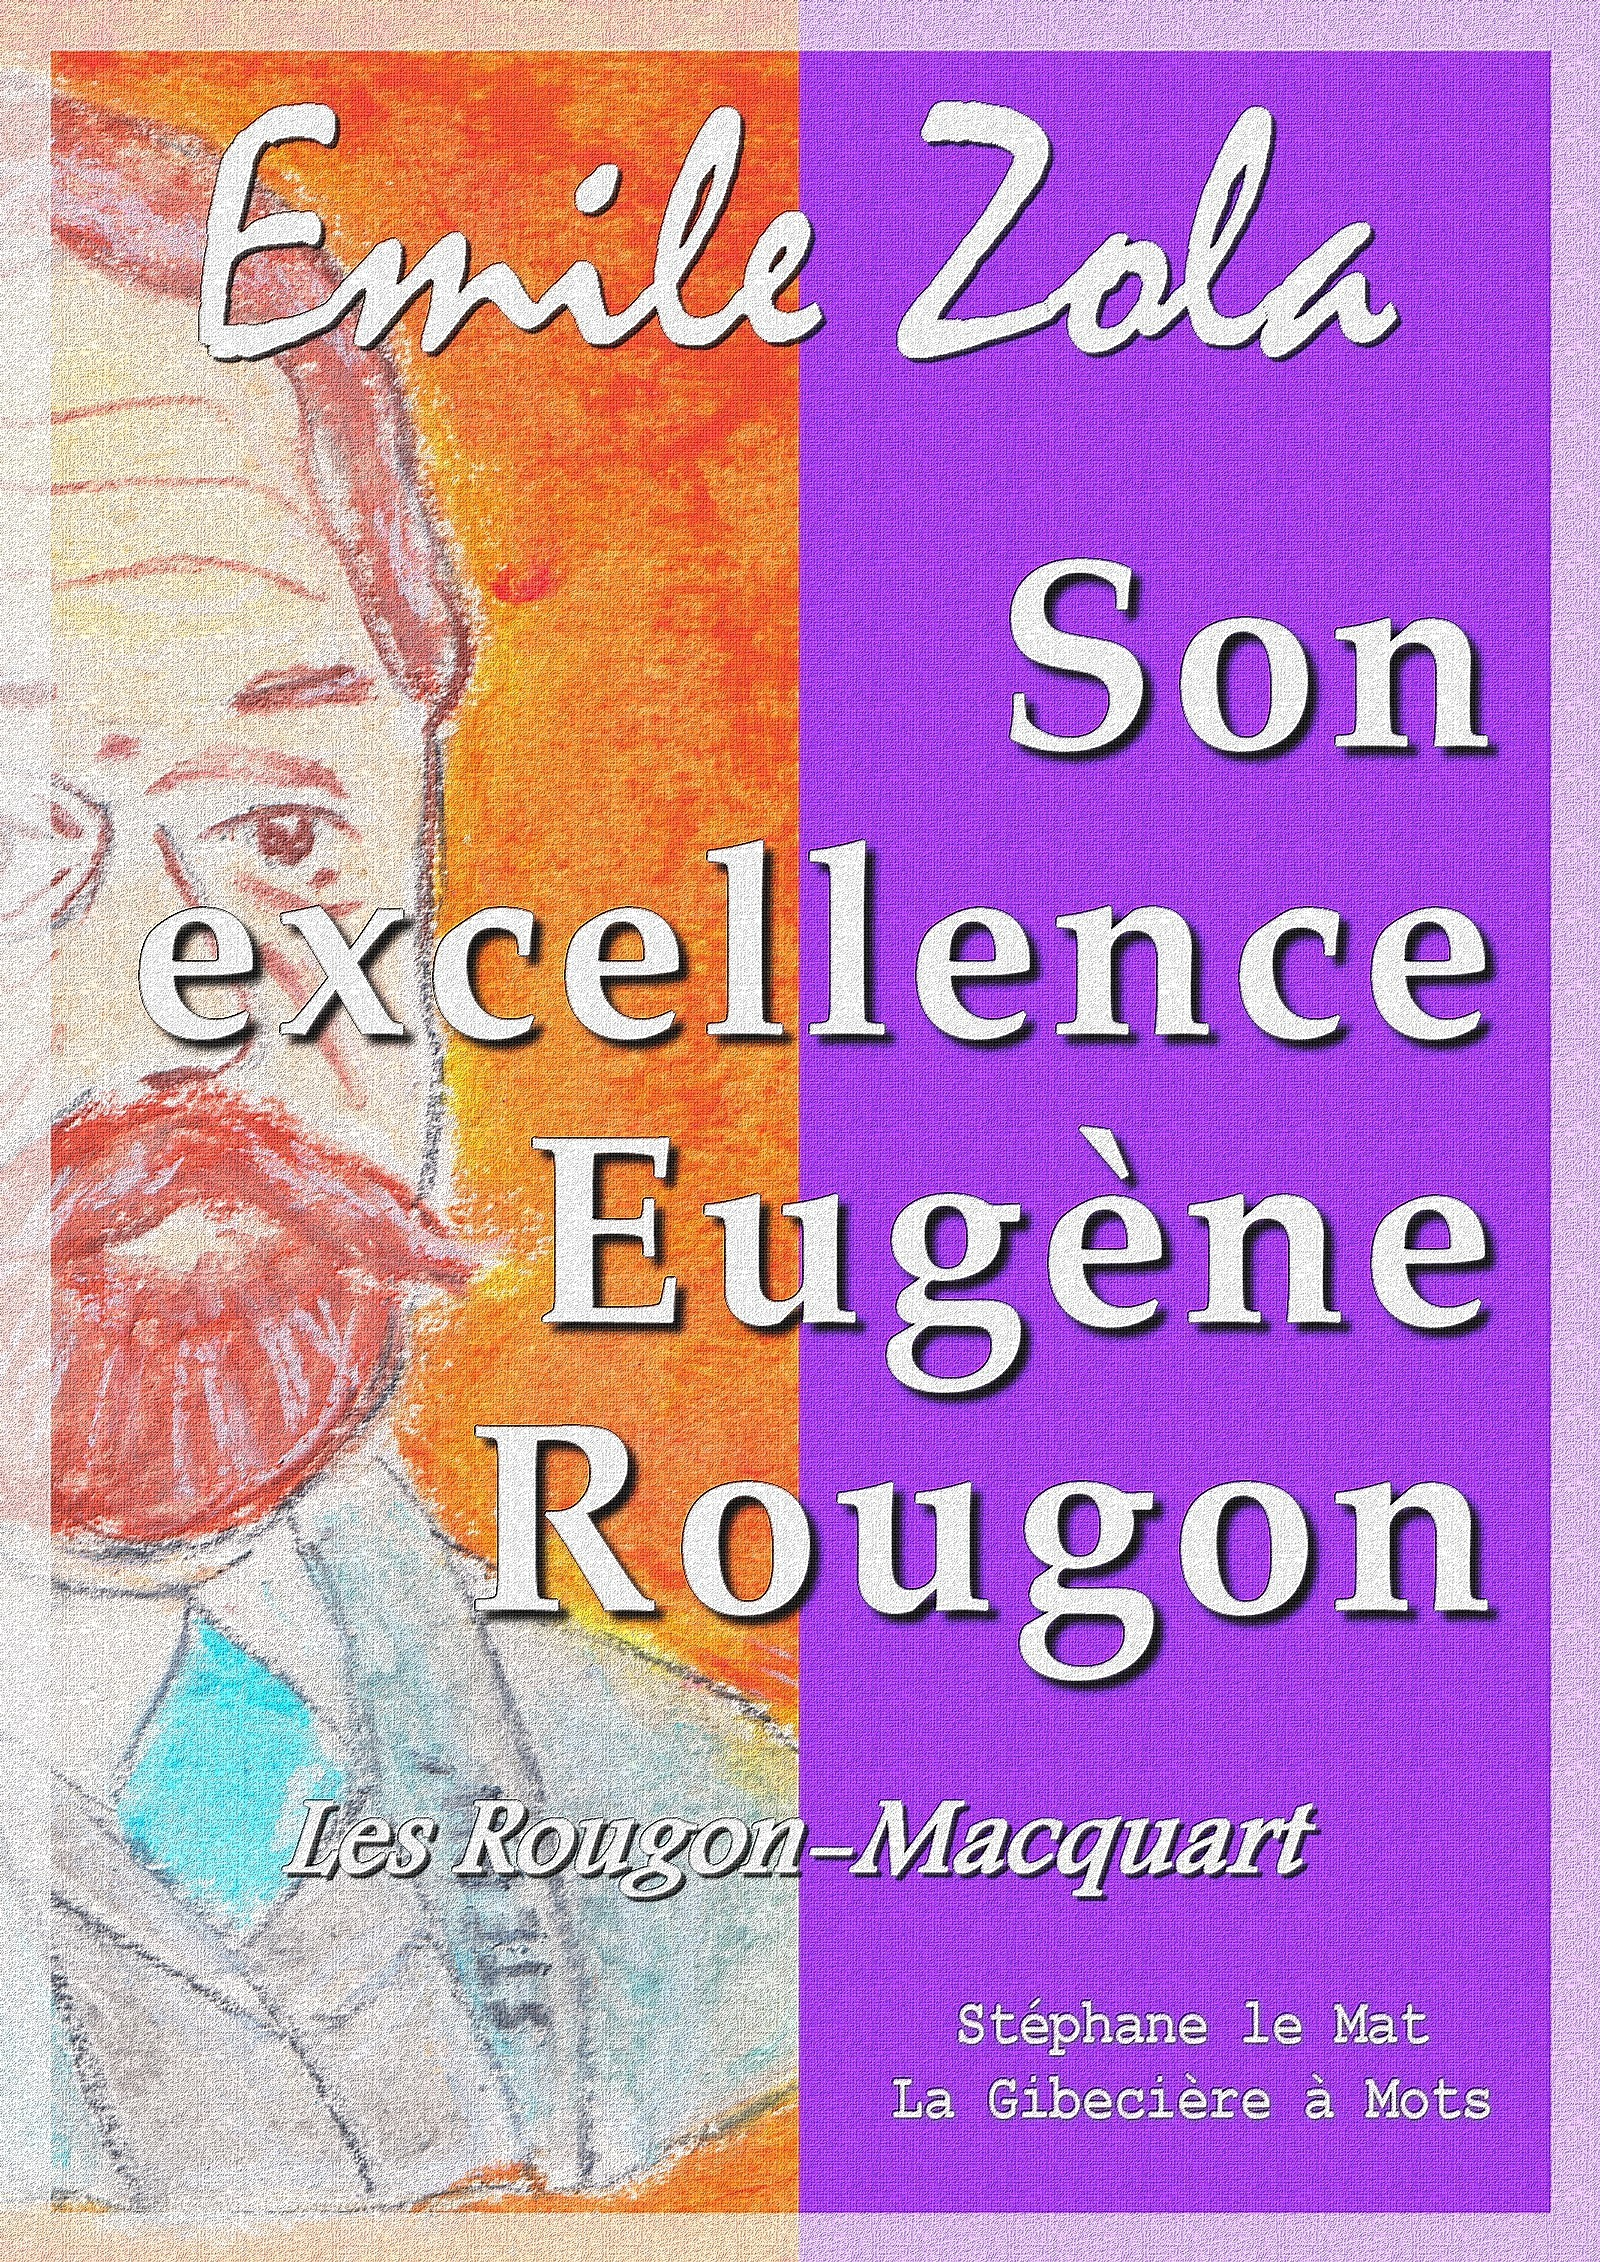 Son excellence Eugène Rougon, LES ROUGON-MACQUART 6/20